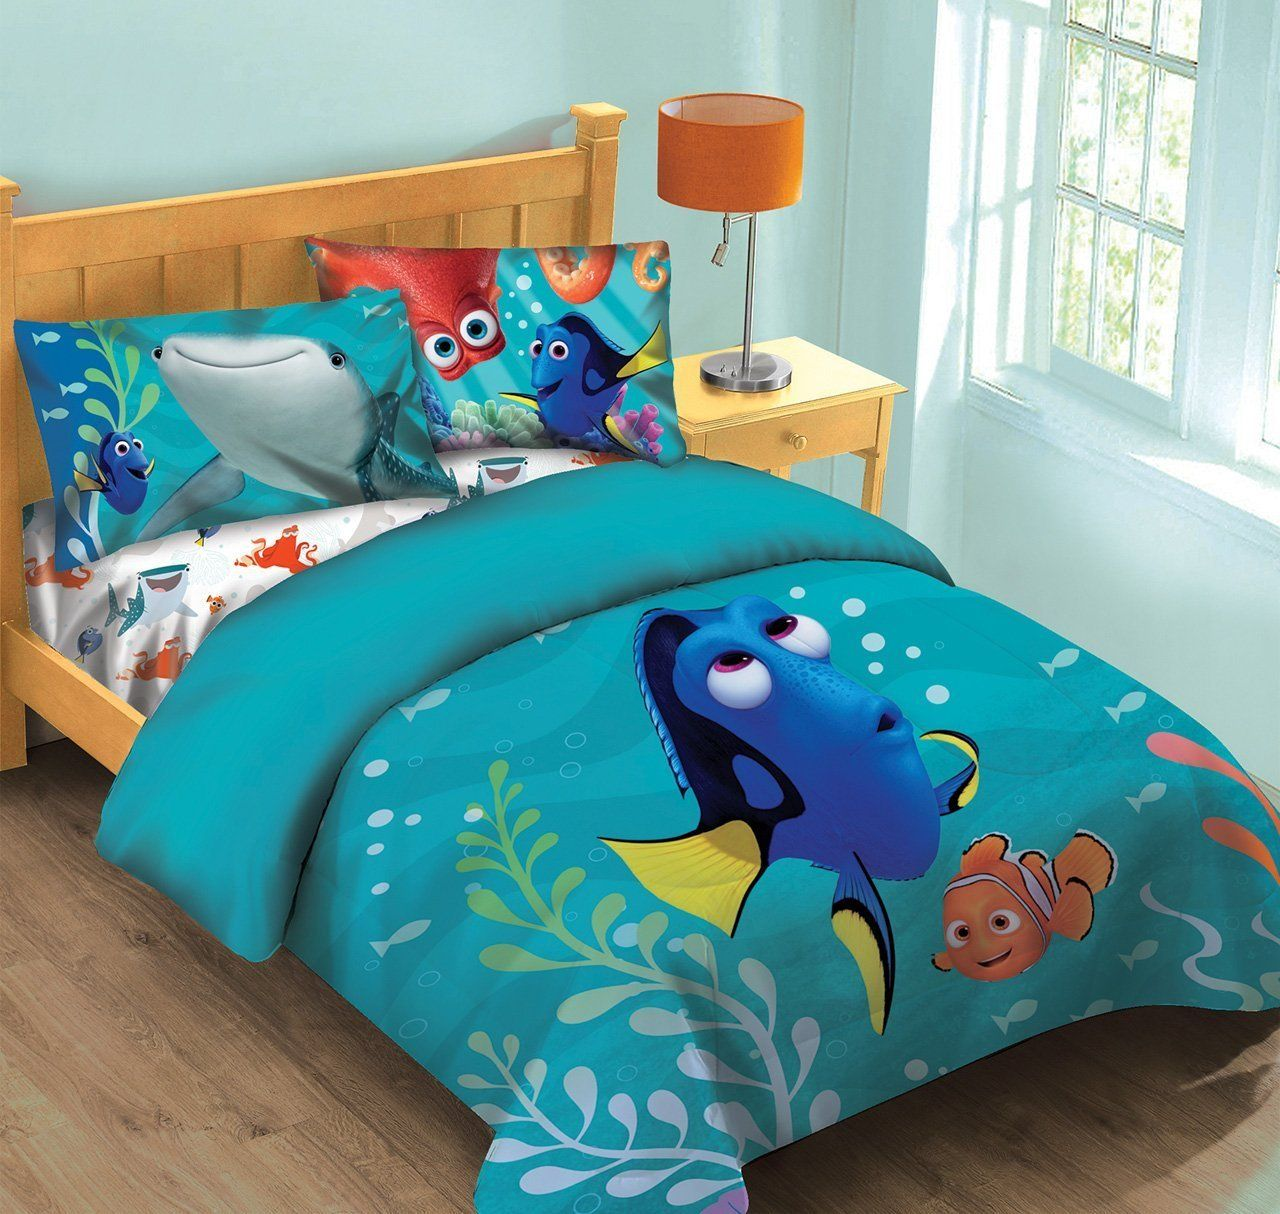 Finding Dory Bedding Bedroom Decor Bedroom Theme Pinterest Bedrooms Room And Bedroom Themes